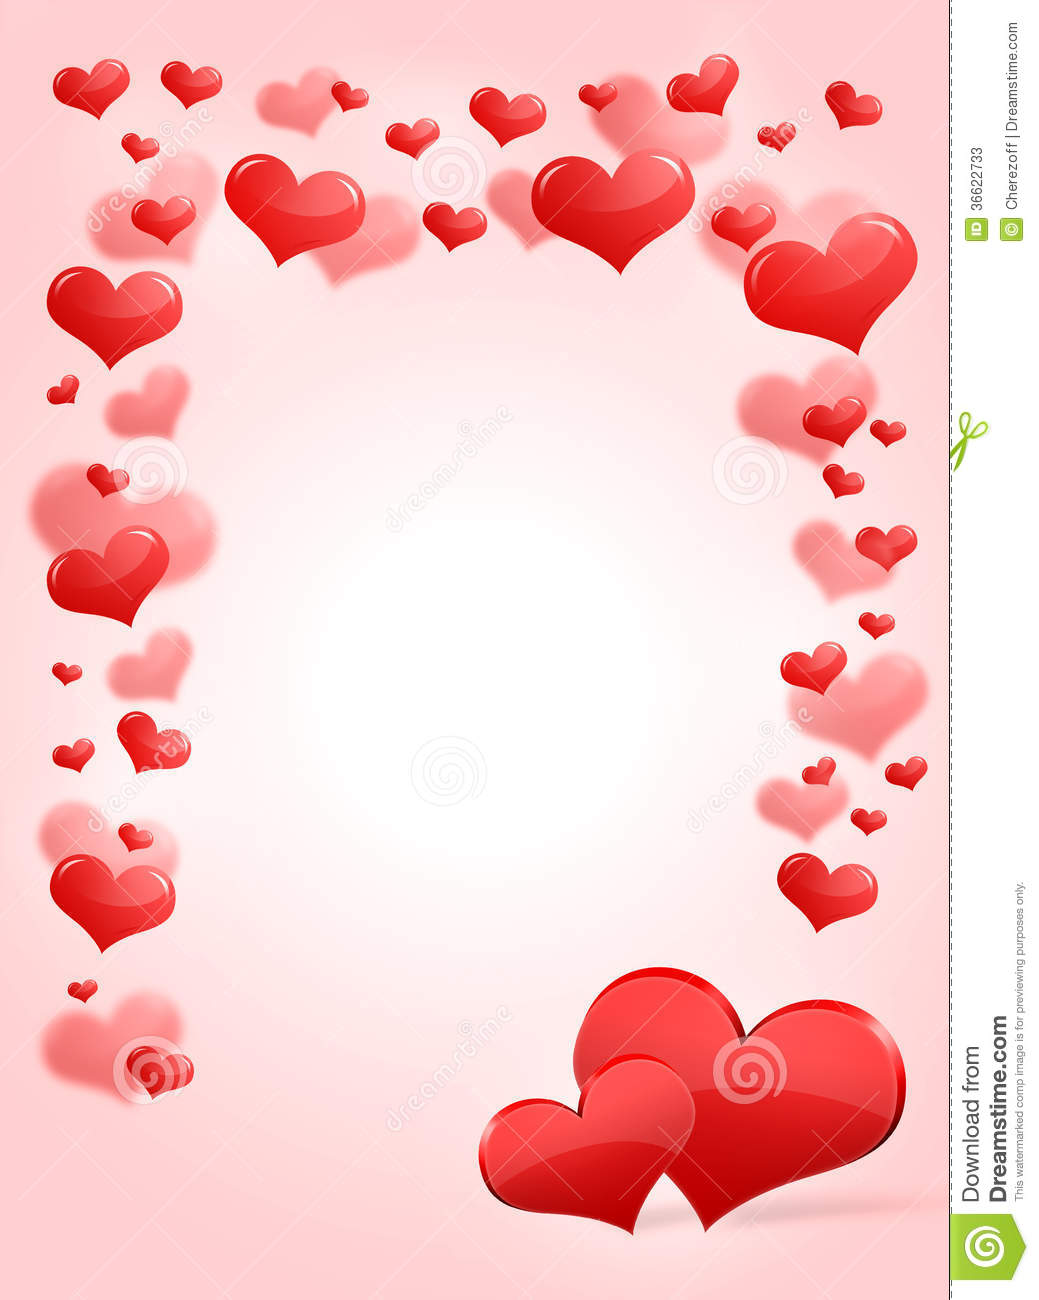 Abstract frame with red hearts. The concept of Valentine's Day.